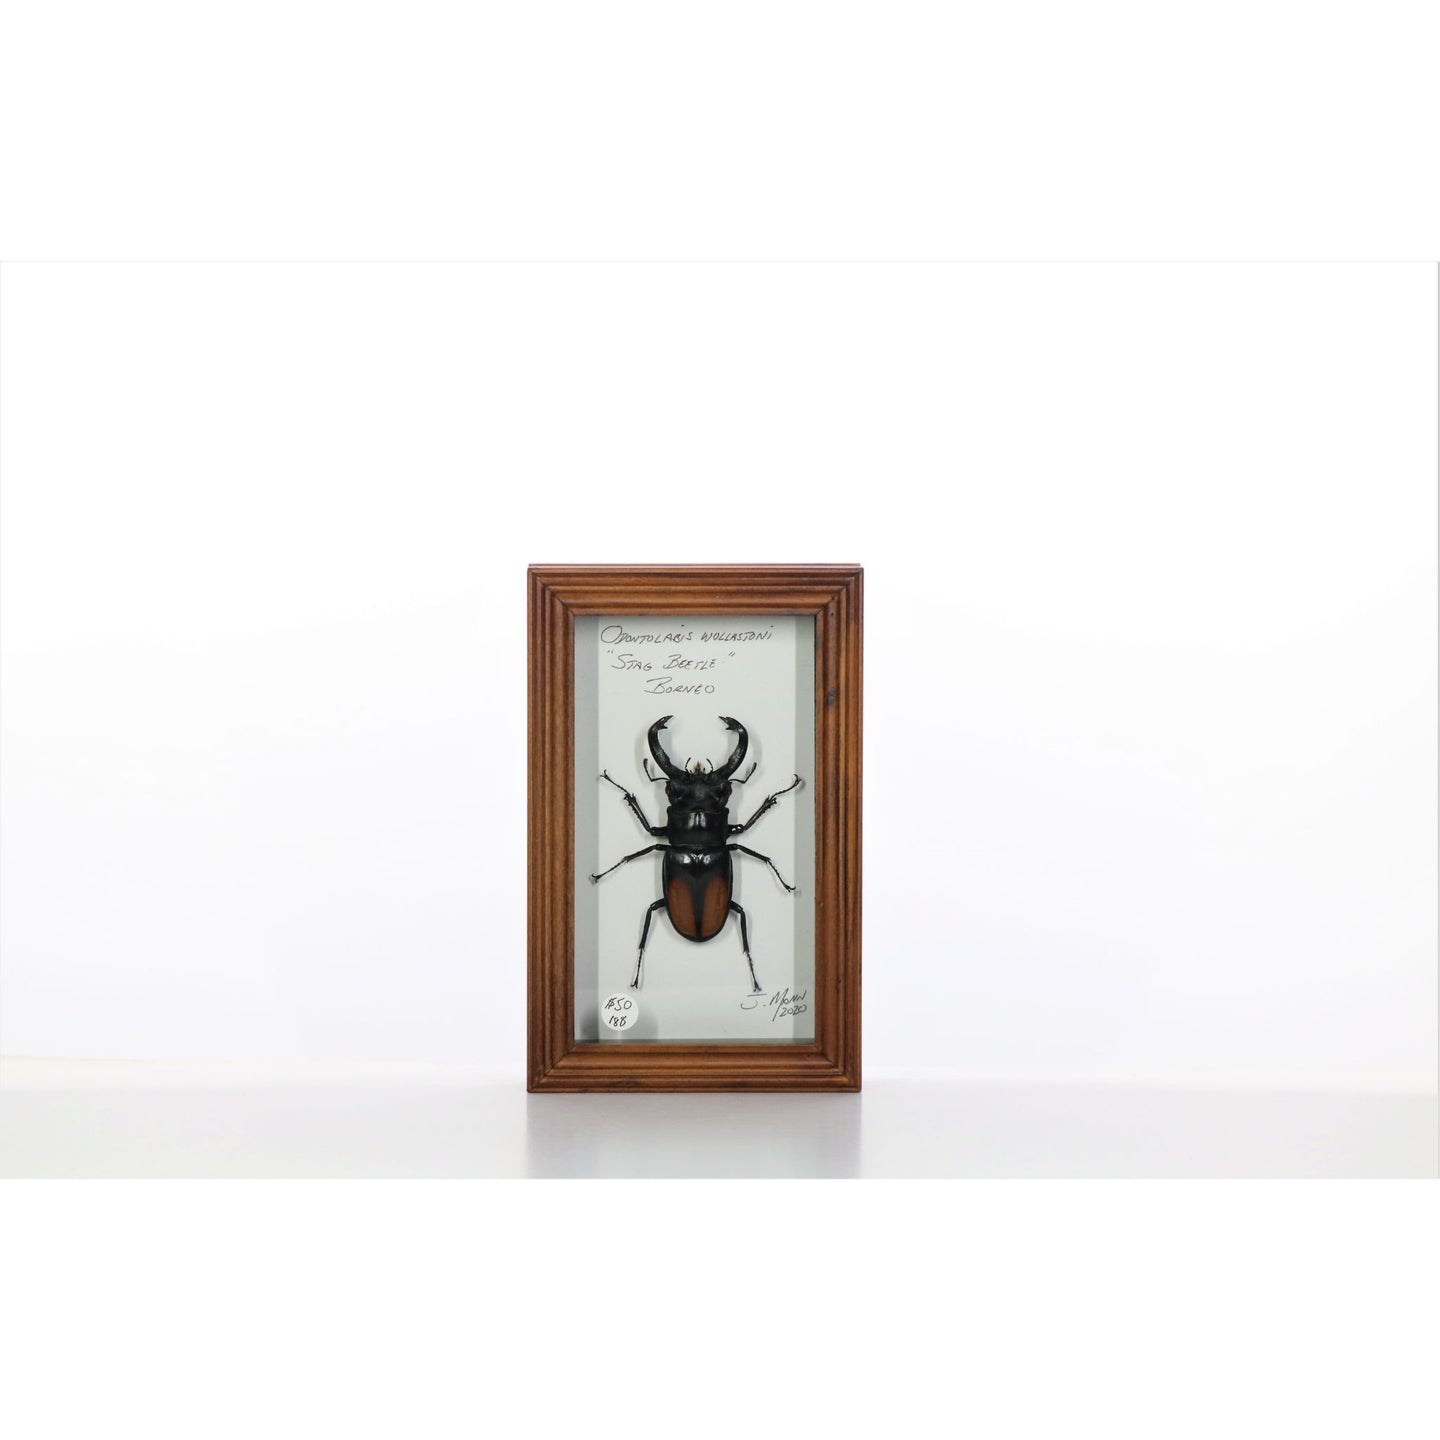 Stag Beetle 4x7 Brown #188 Framed Art - Insecta Etcetera